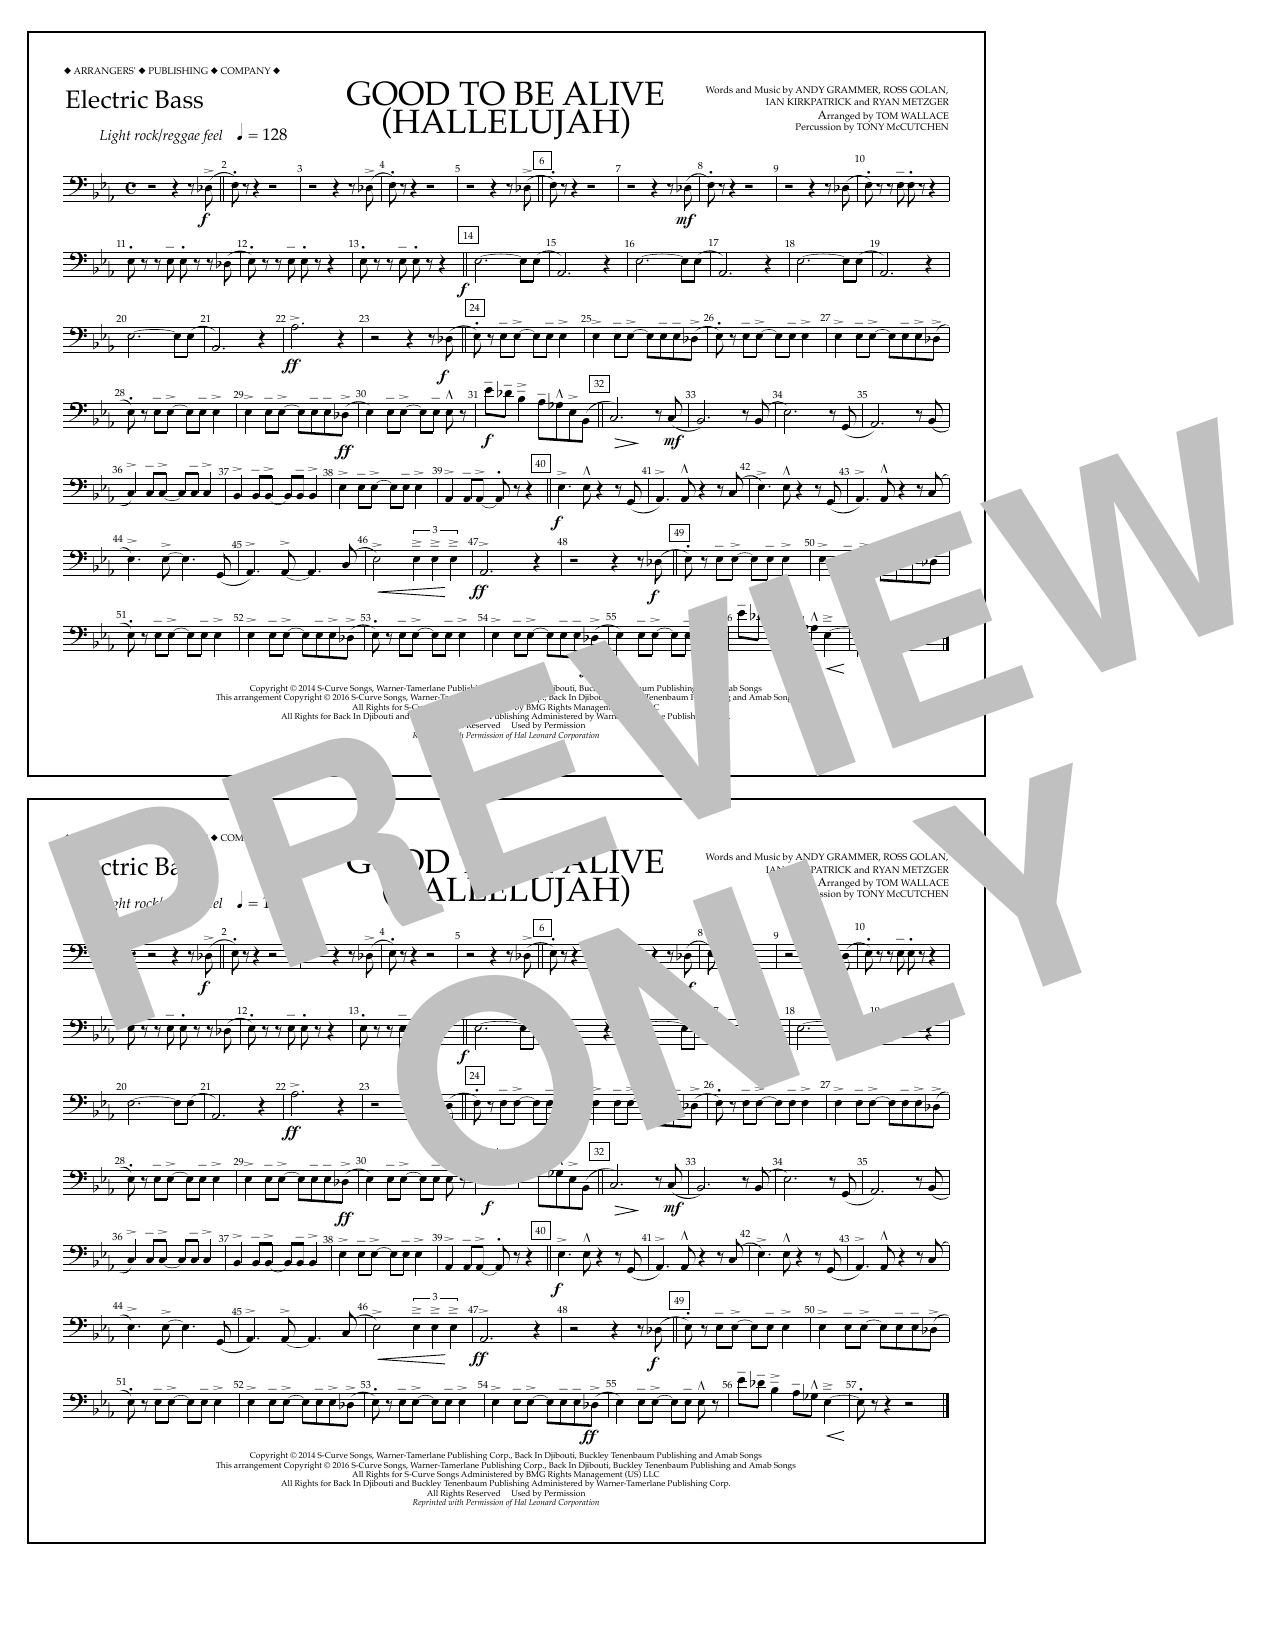 Good to Be Alive (Hallelujah) - Electric Bass Sheet Music